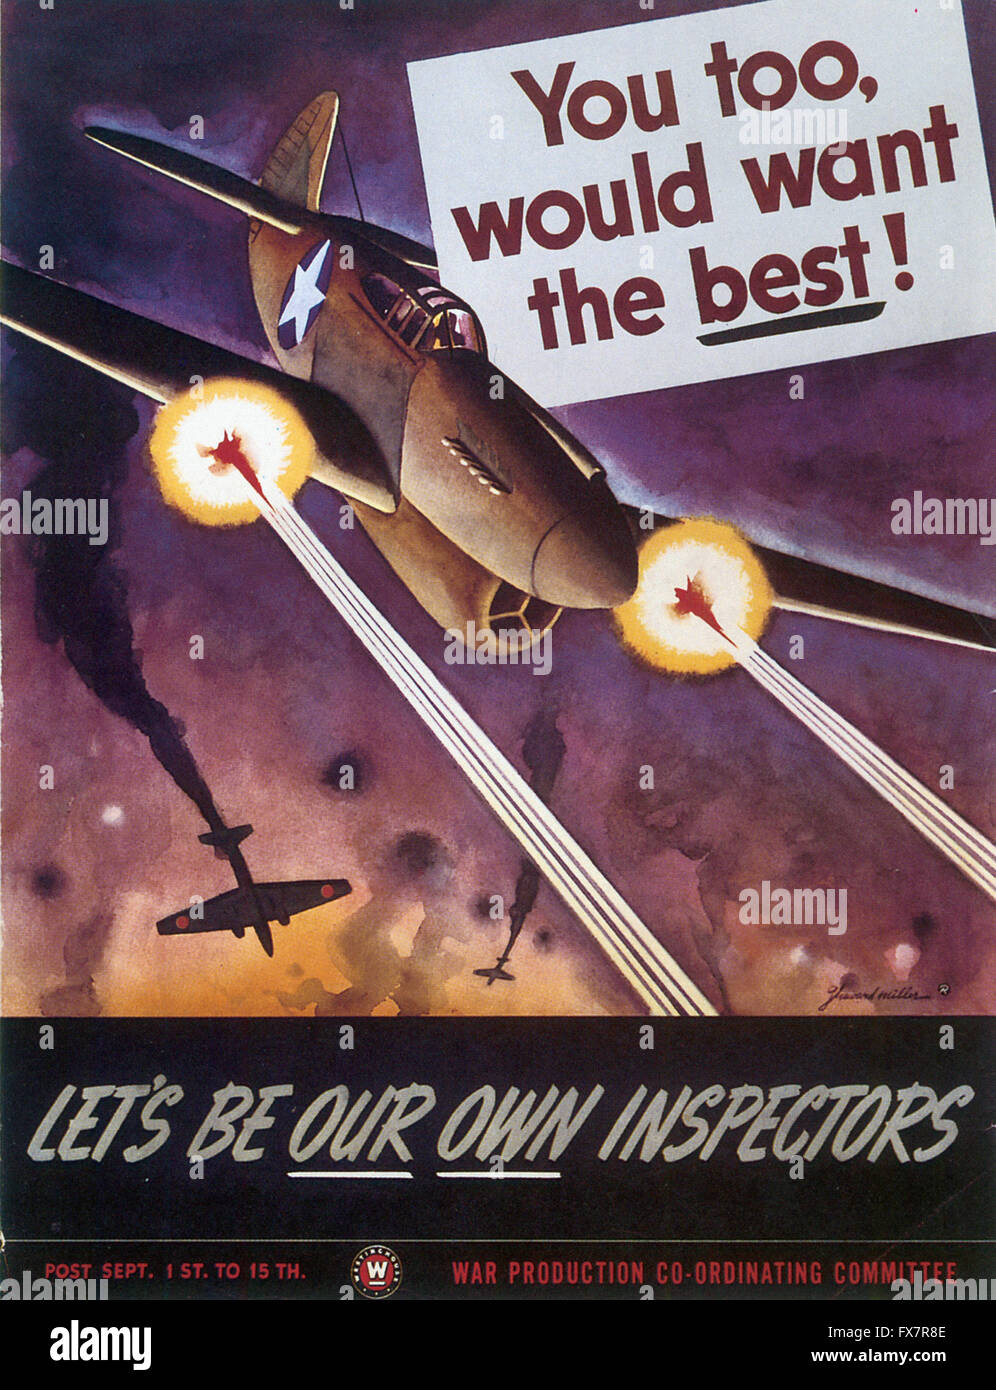 You Would Want the Best - World War II - U.S propaganda Poster - Stock Image